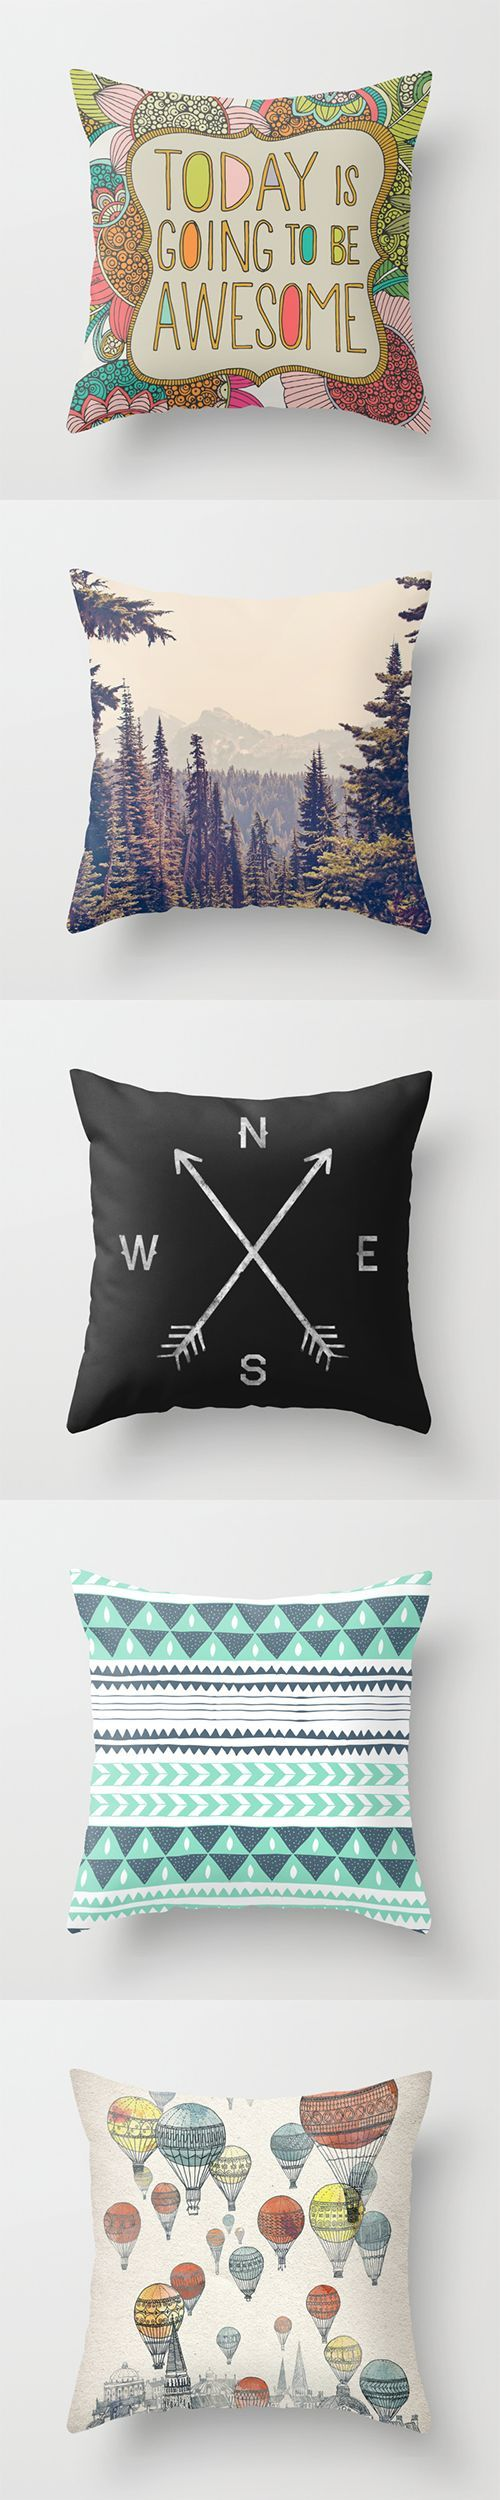 Throw Pillows and millions of other products available at Society6.com today.